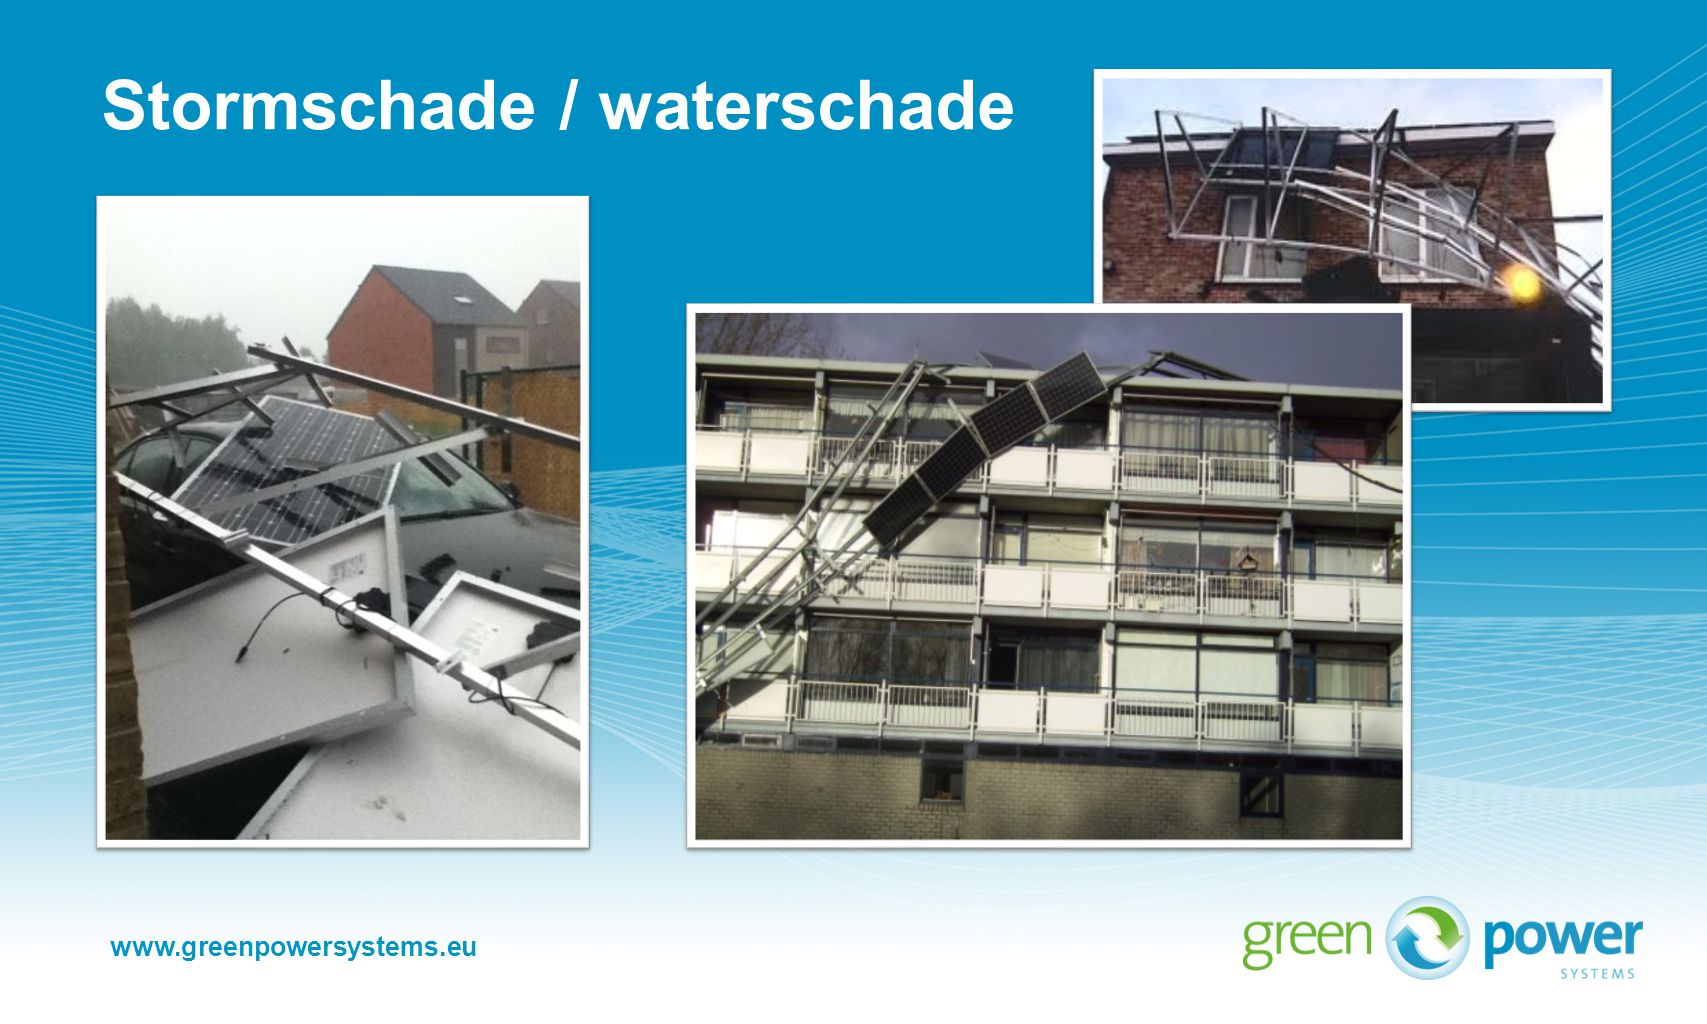 Stormschade / waterschade